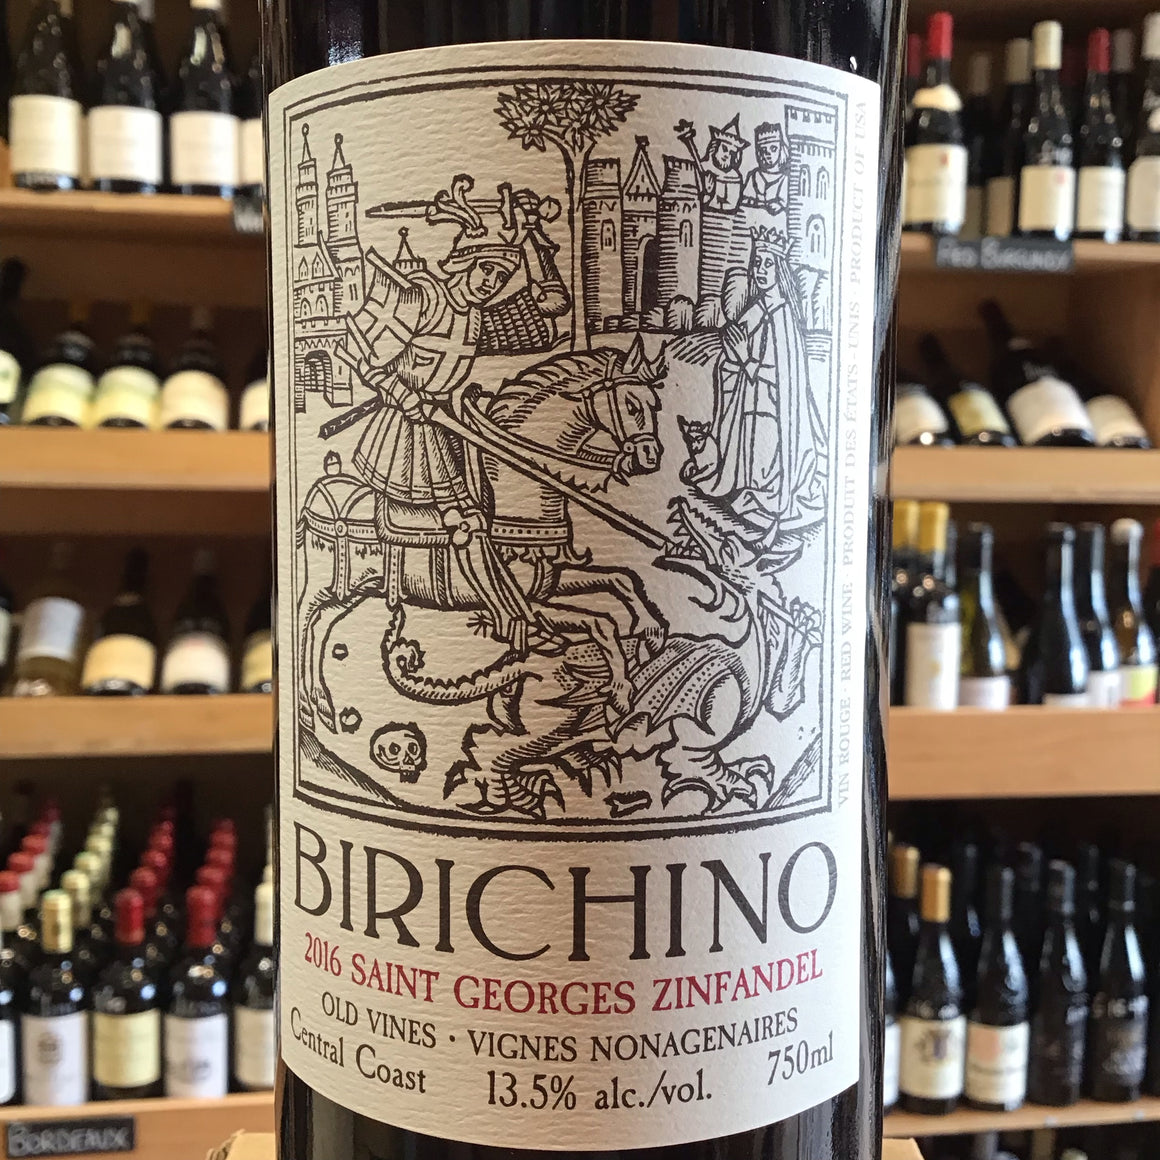 Birichino St.Georges Zinfandel 2016 - Butlers Wine Cellar Brighton